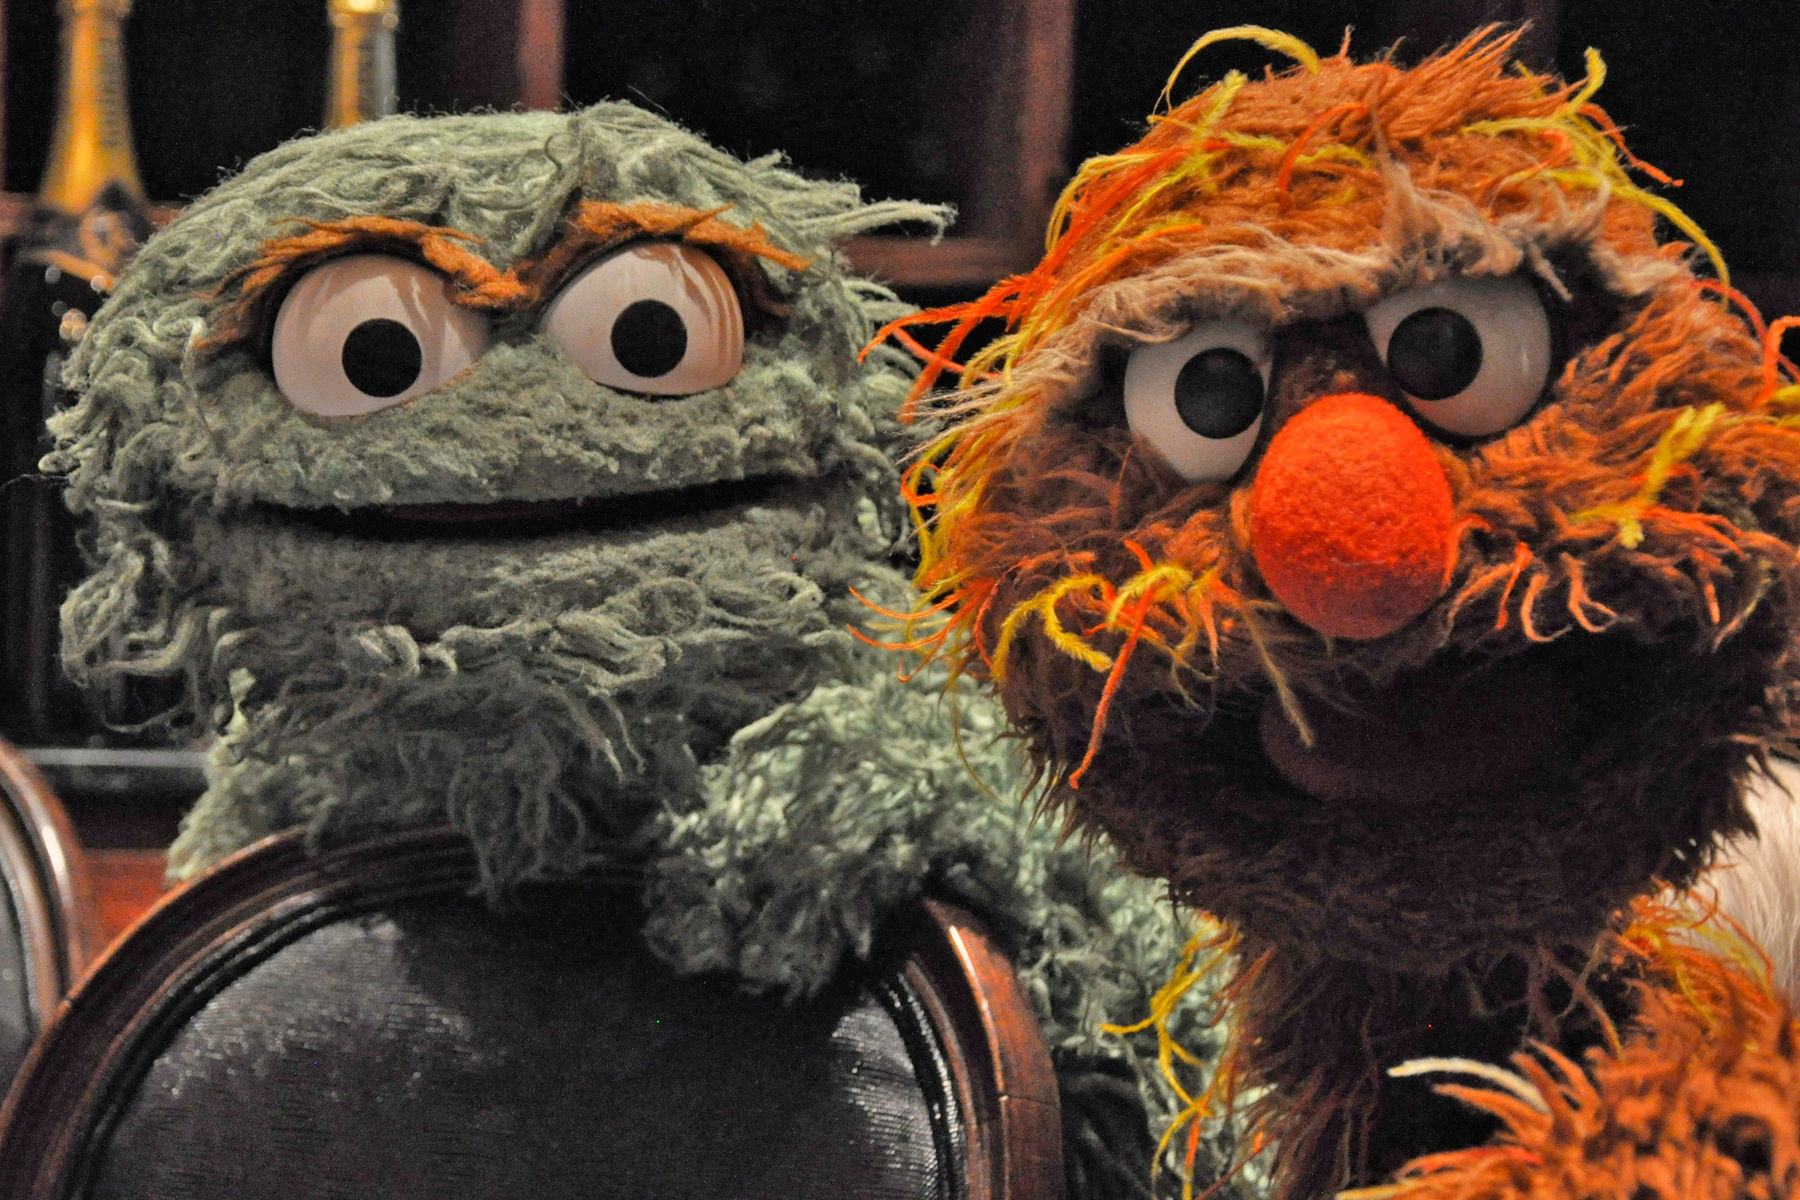 Hebrew 'Sesame Street' channel goes off the air after 50